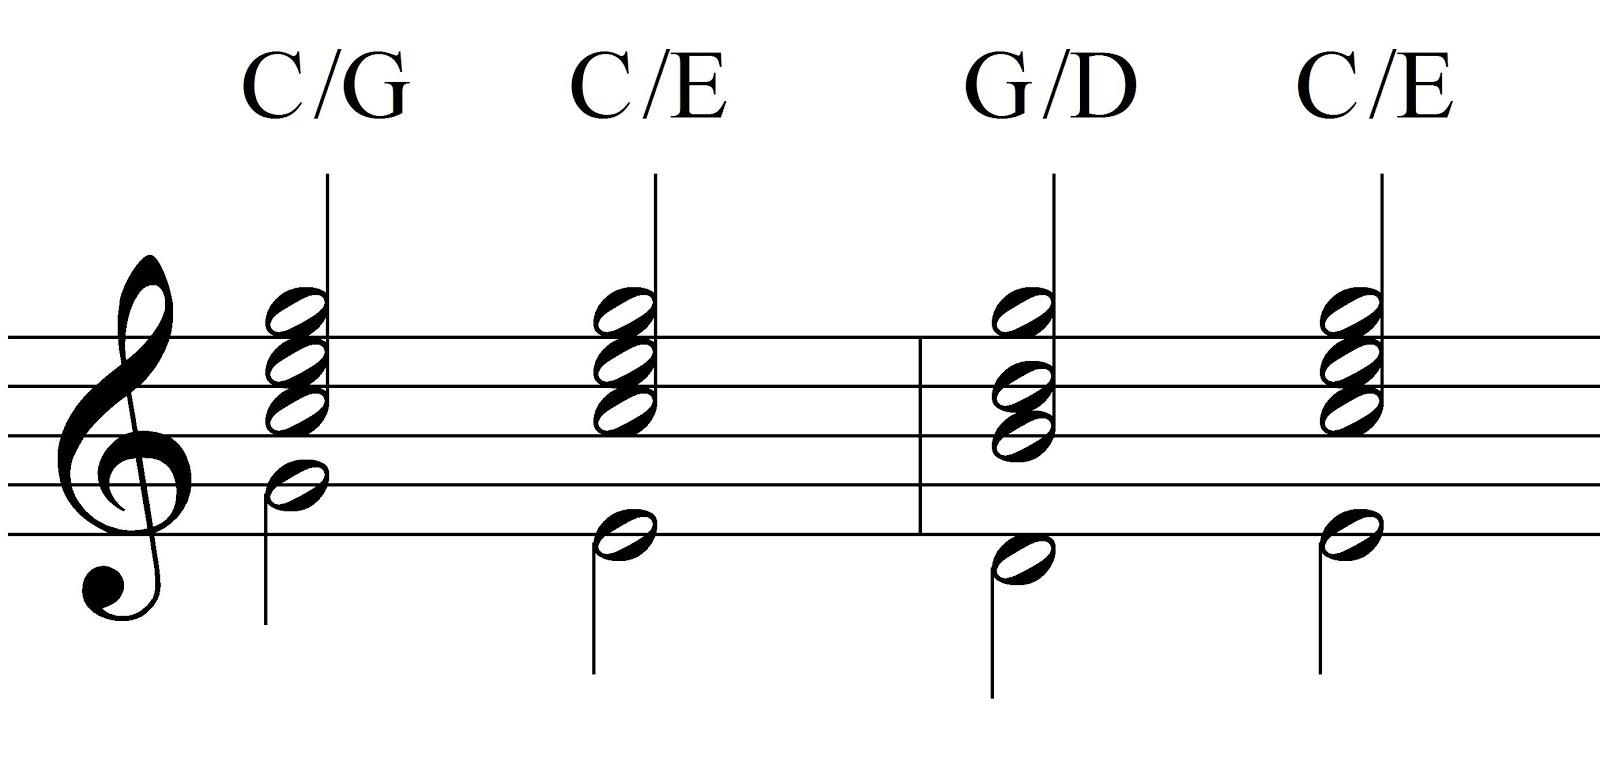 Music theory slash chords slash chords indicating chord inversions buycottarizona Image collections